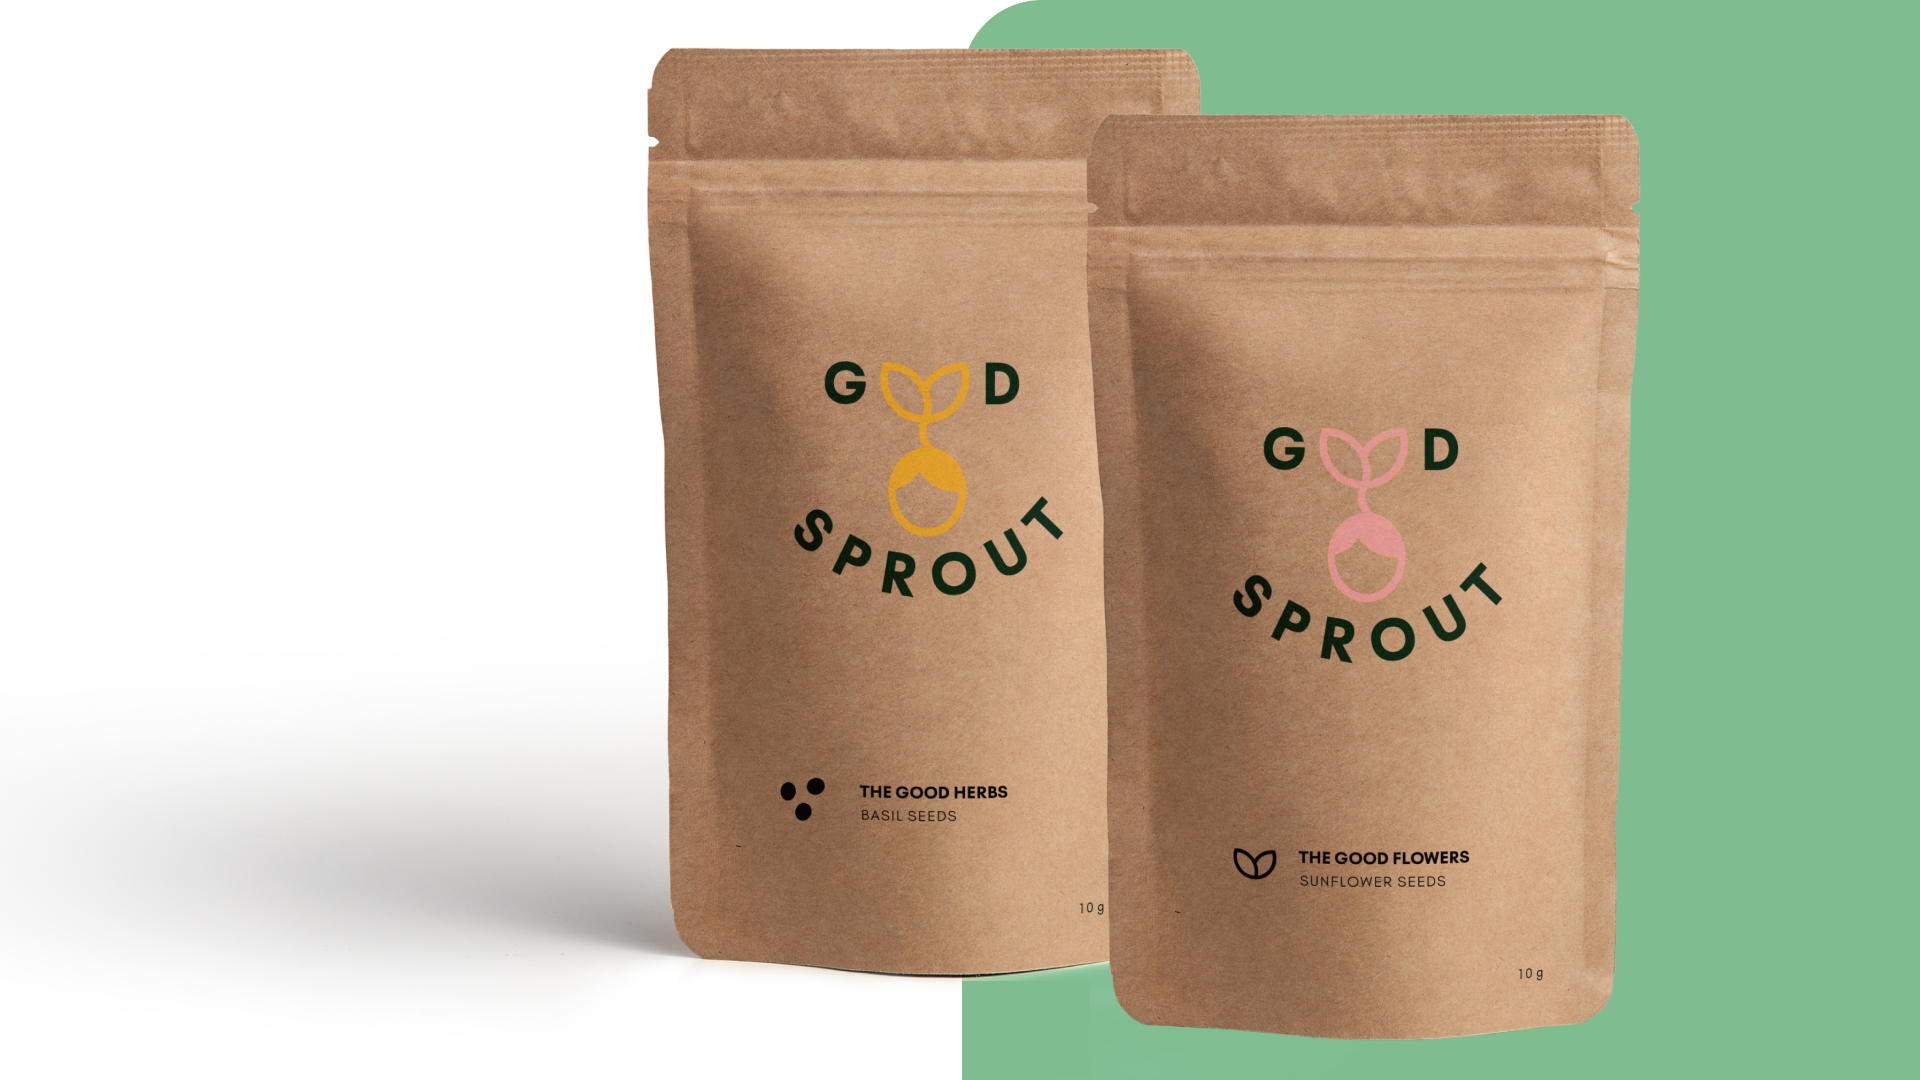 Projekt Good Sprout 25